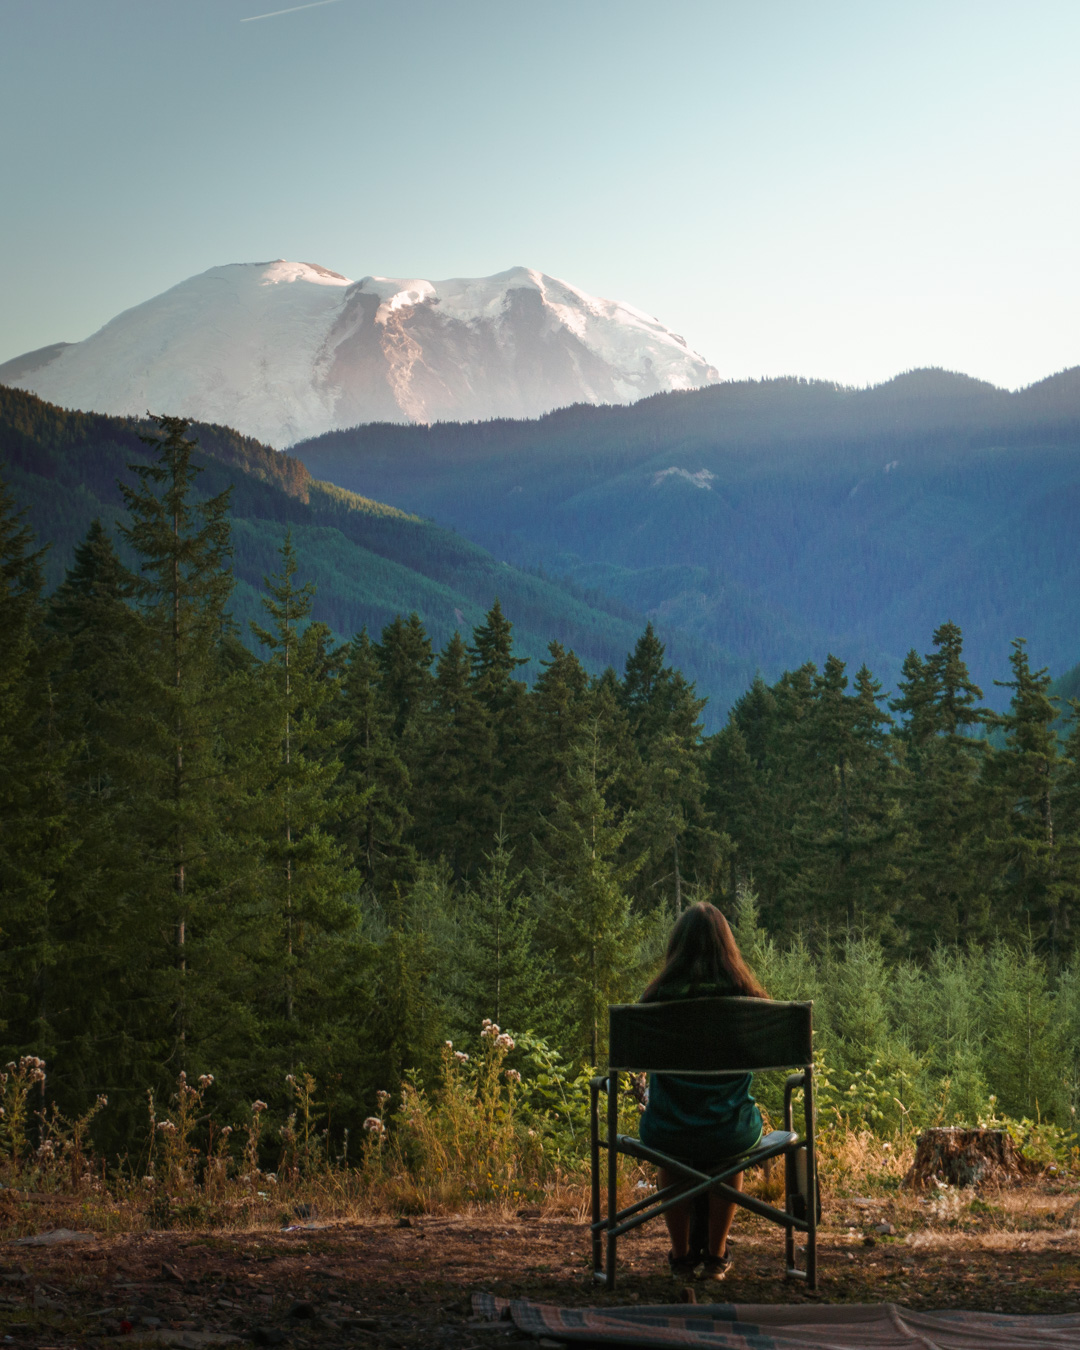 Views like these made it easy for us to fall in love with the boondocking life.